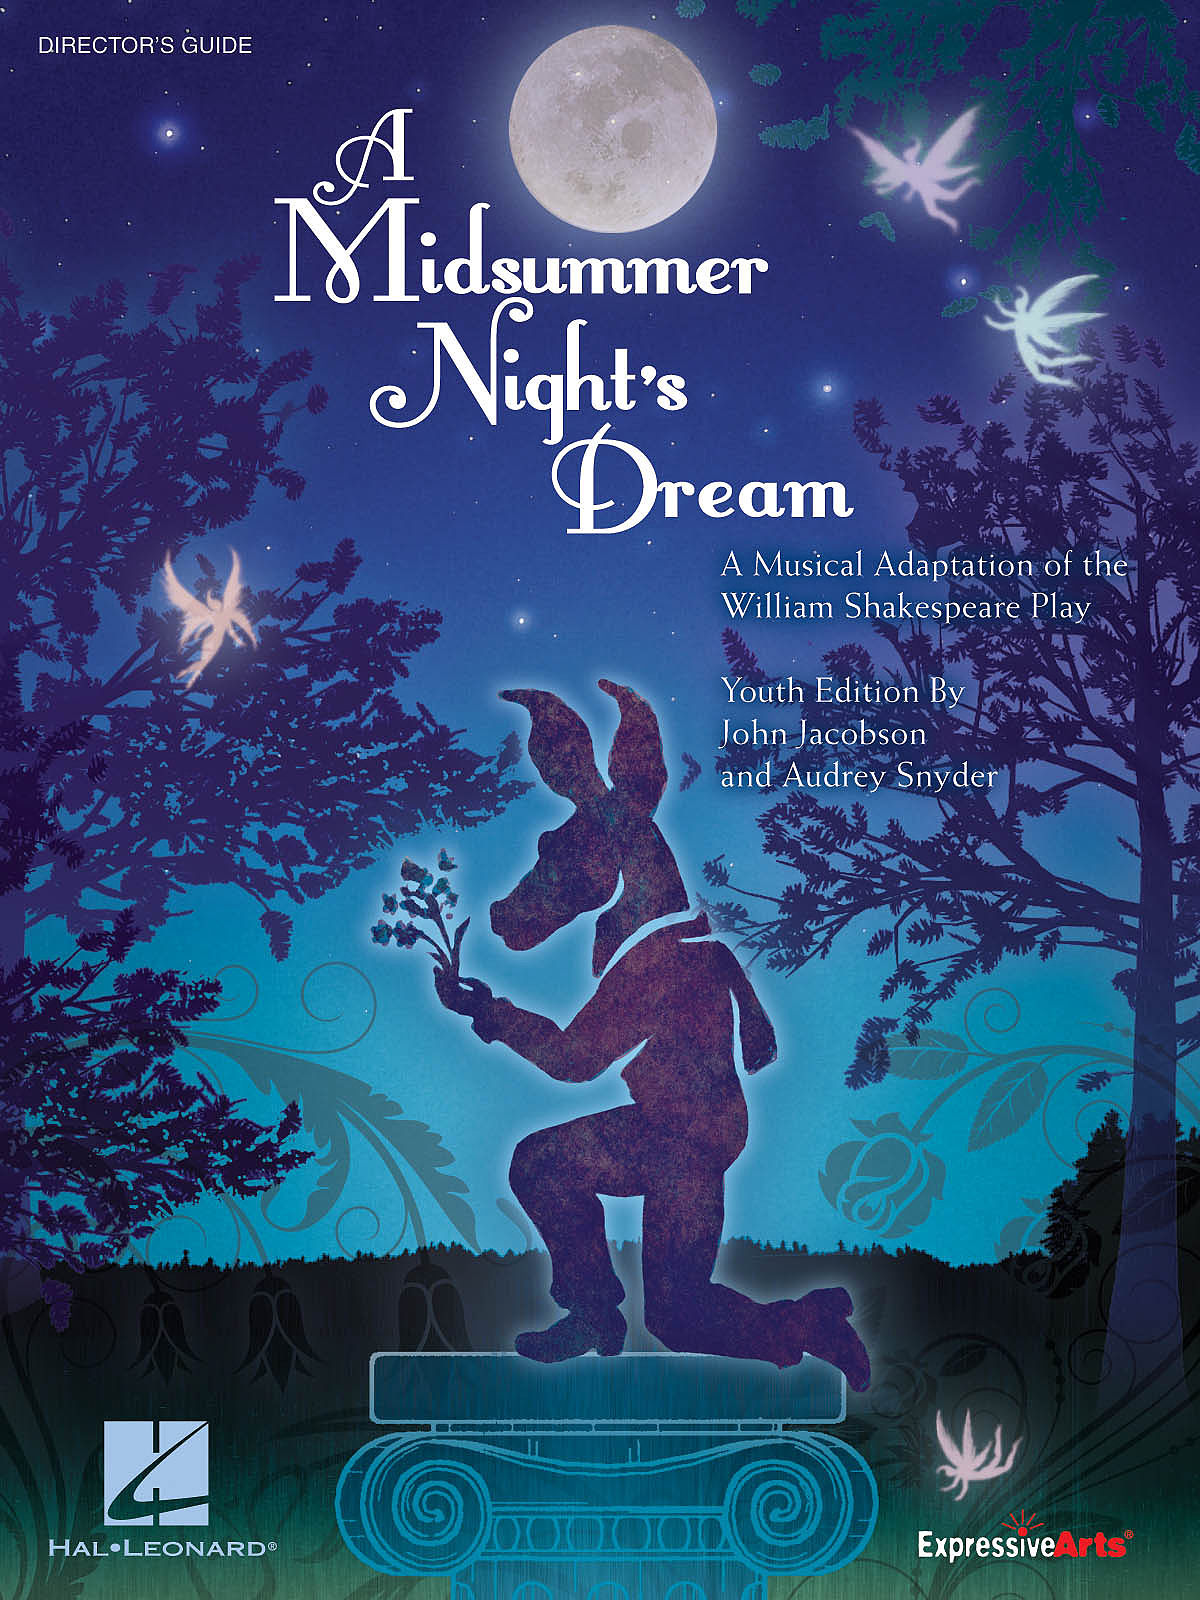 midsummers nights dream The course of true love never did run smooth (11) in a midsummer night's dream, residents of athens mix with fairies from a local forest, with comic resultsin the city, theseus, duke of athens, is to marry hippolyta, queen of the amazons.